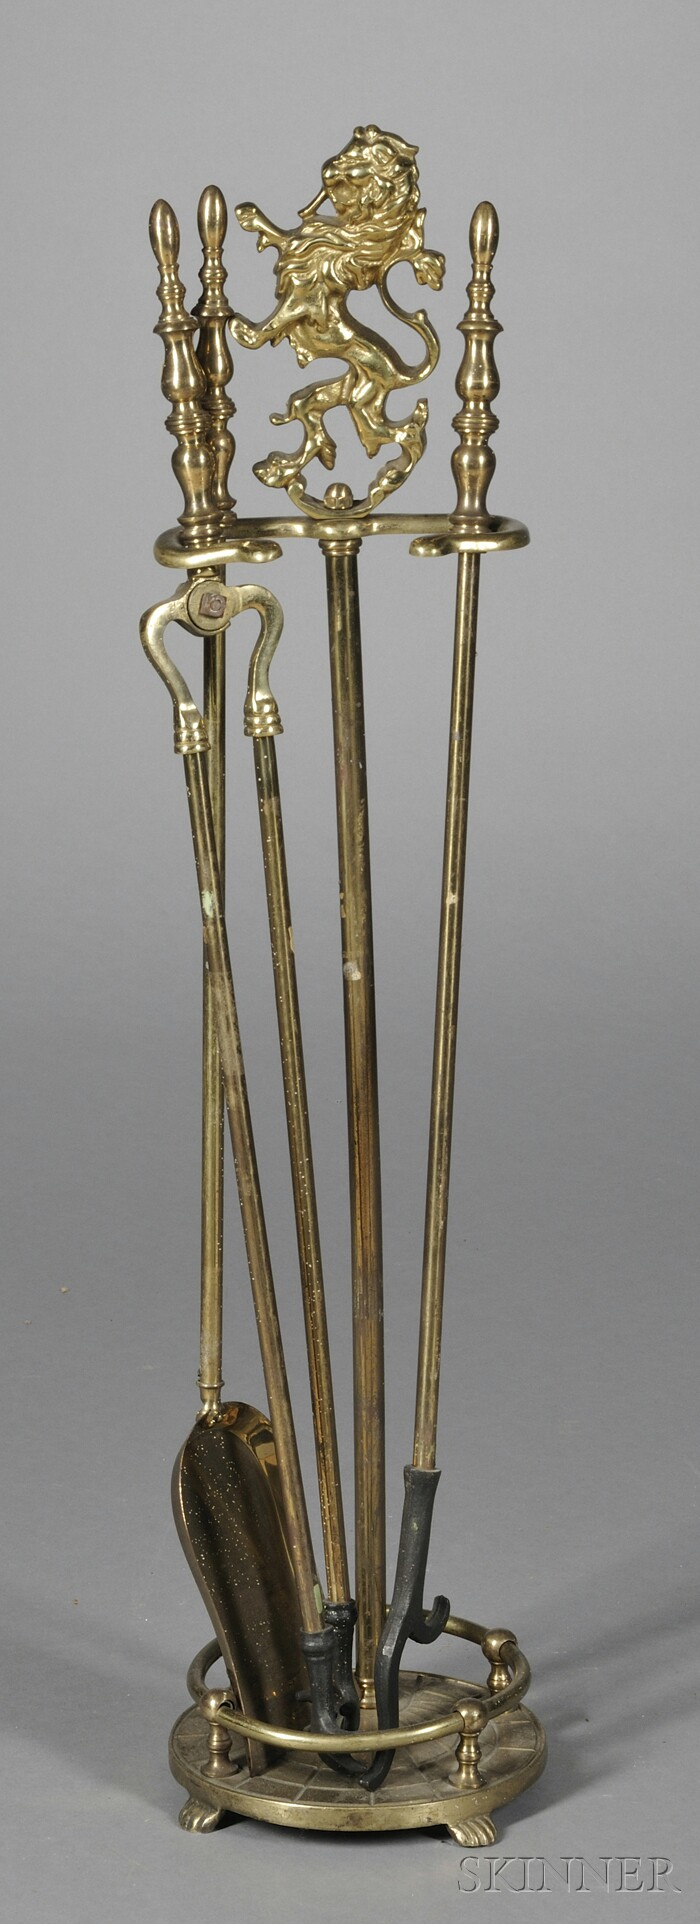 Brass Stand with Three Fireplace Tools